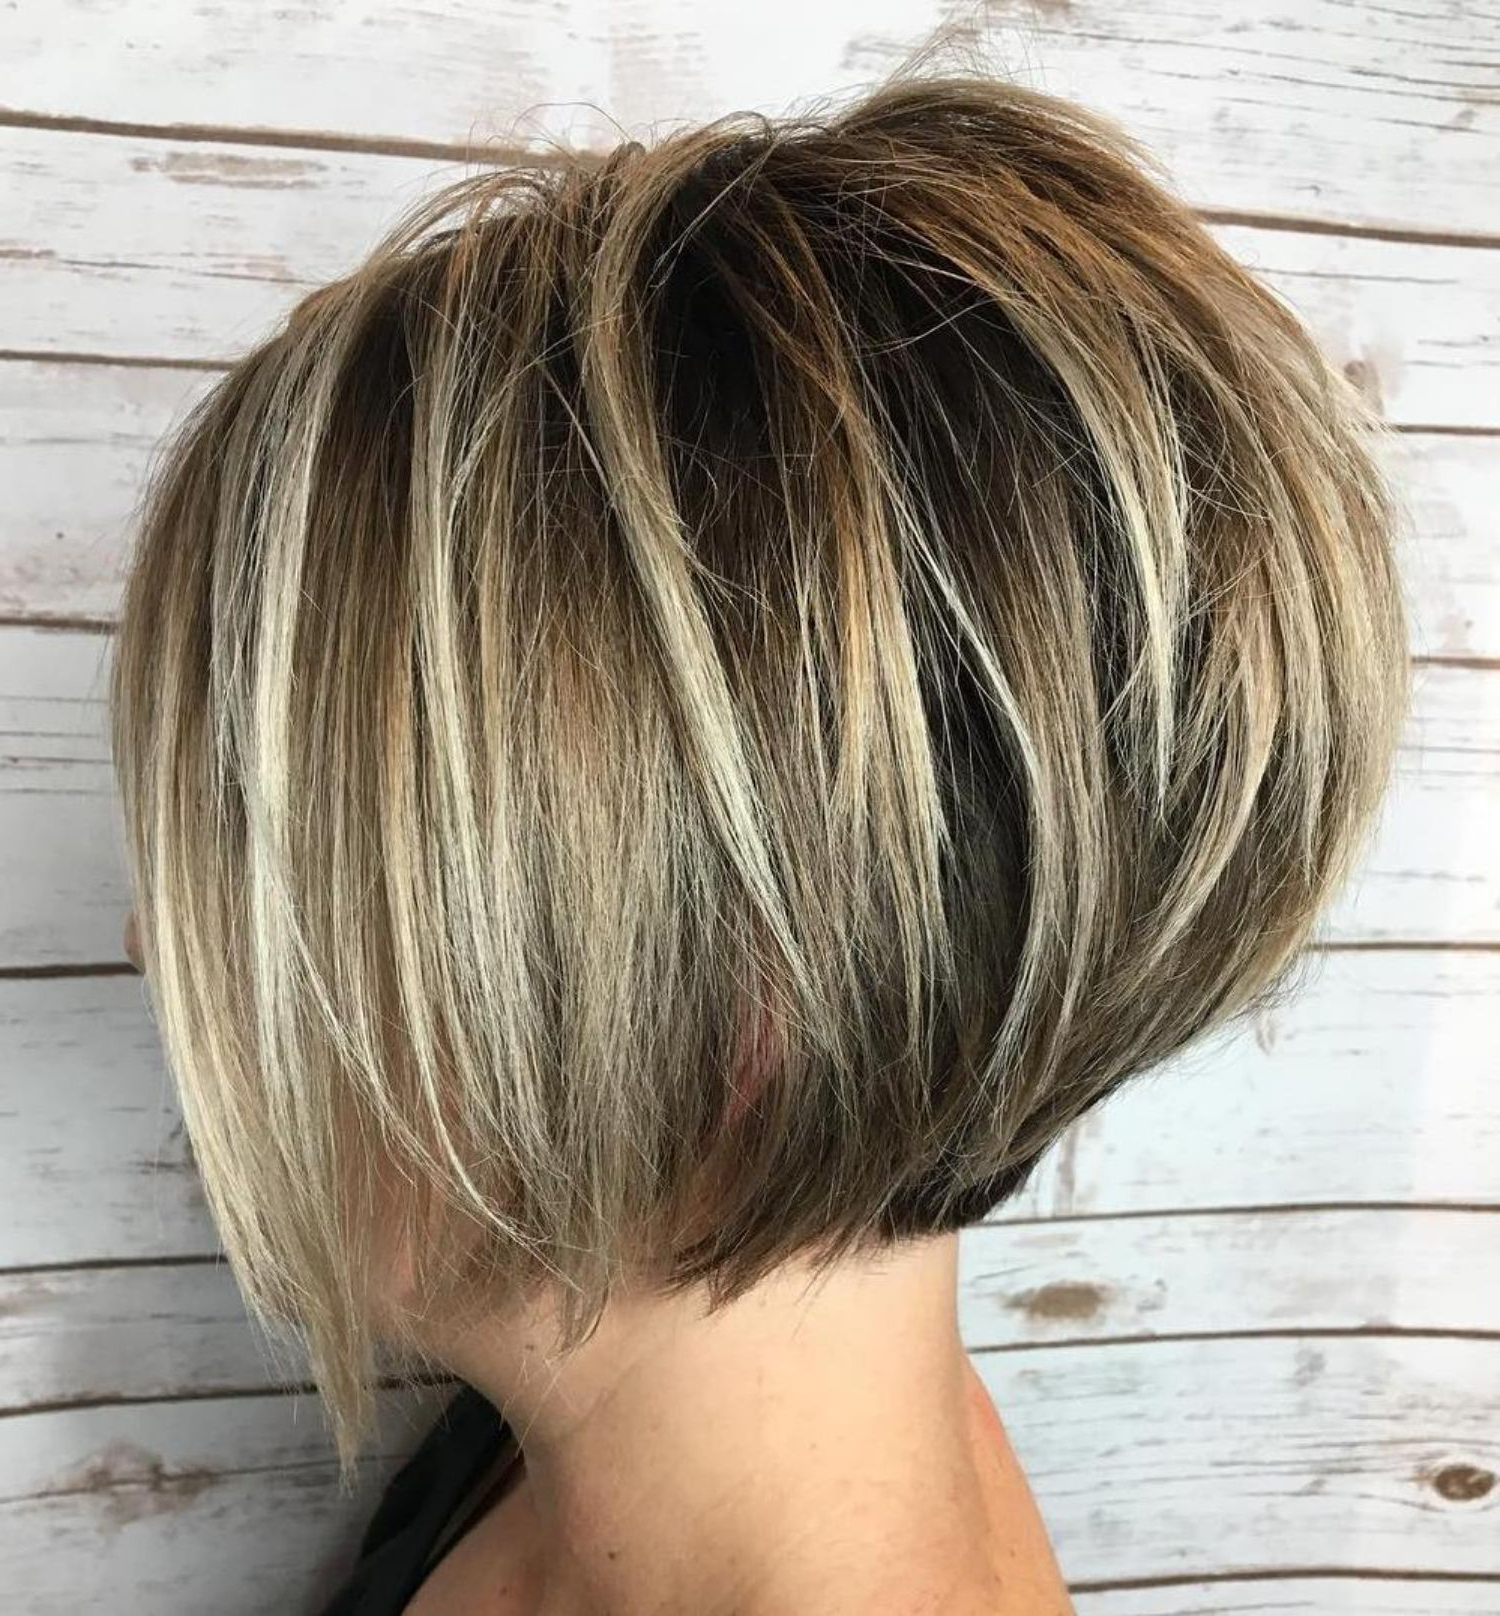 50 Trendy Inverted Bob Haircuts In 2018 | Hair | Pinterest | Hair For Voluminous Nape Length Inverted Bob Hairstyles (View 3 of 20)